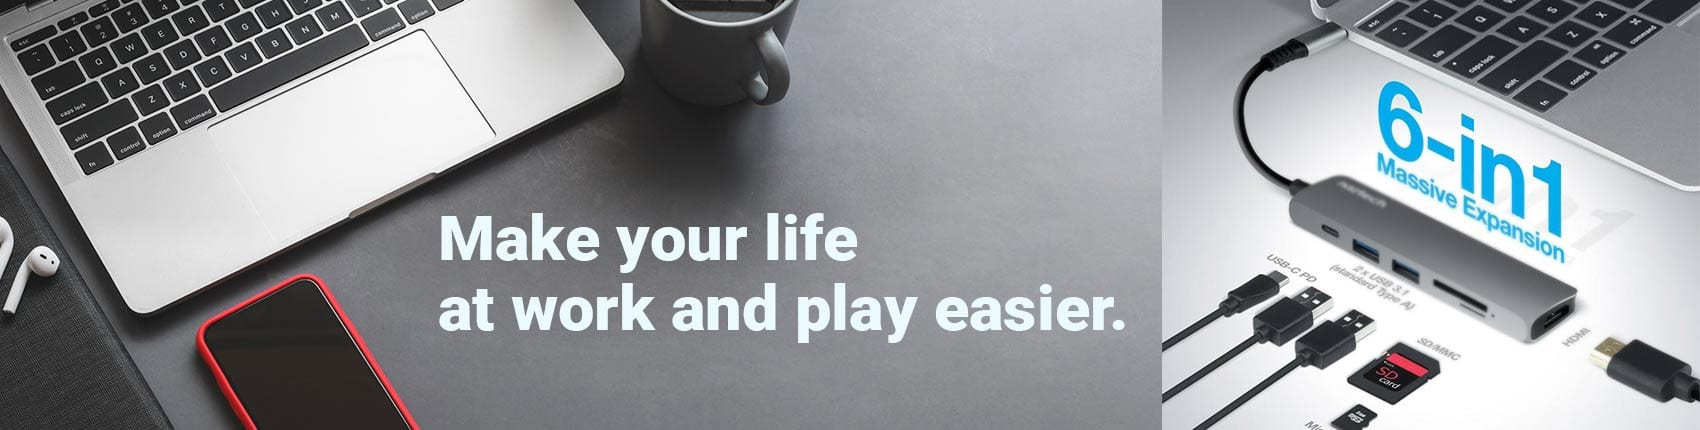 Personal Productivity Products - Make your life at work and play easier